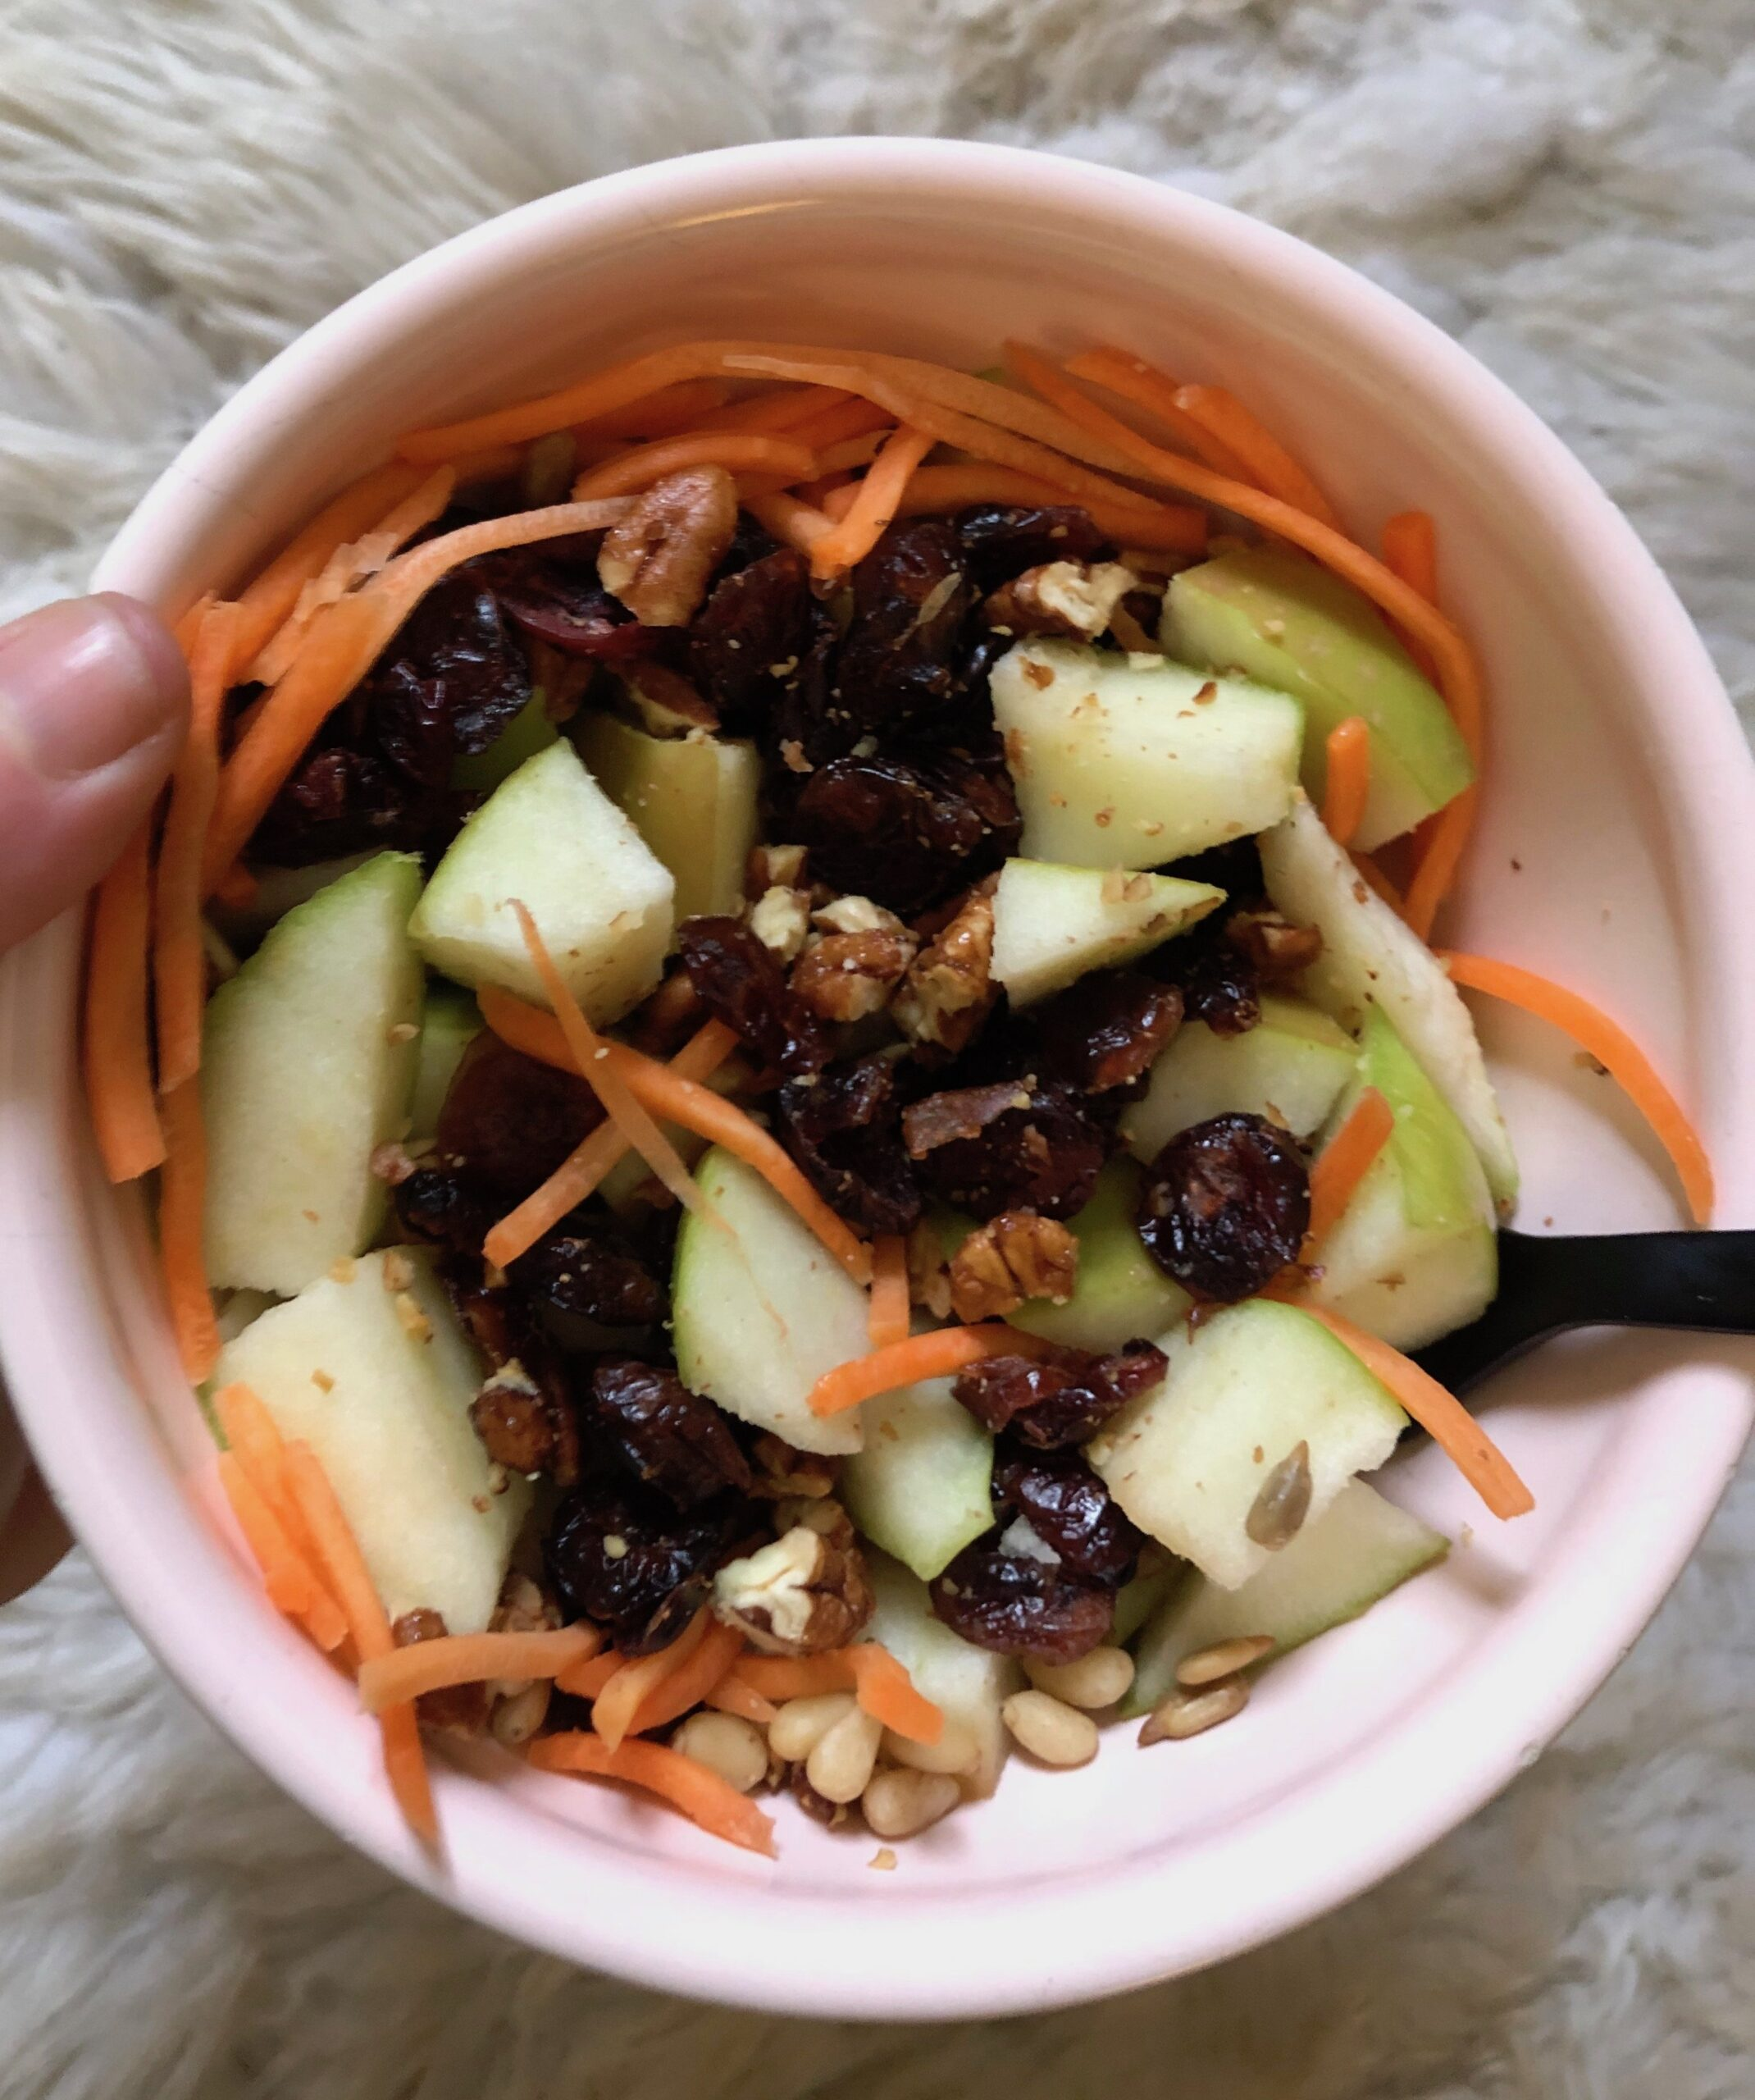 meat free lunch bowls, easy healthy lunches, lunches at home , cava bowl imitation, healthy lunch bowls